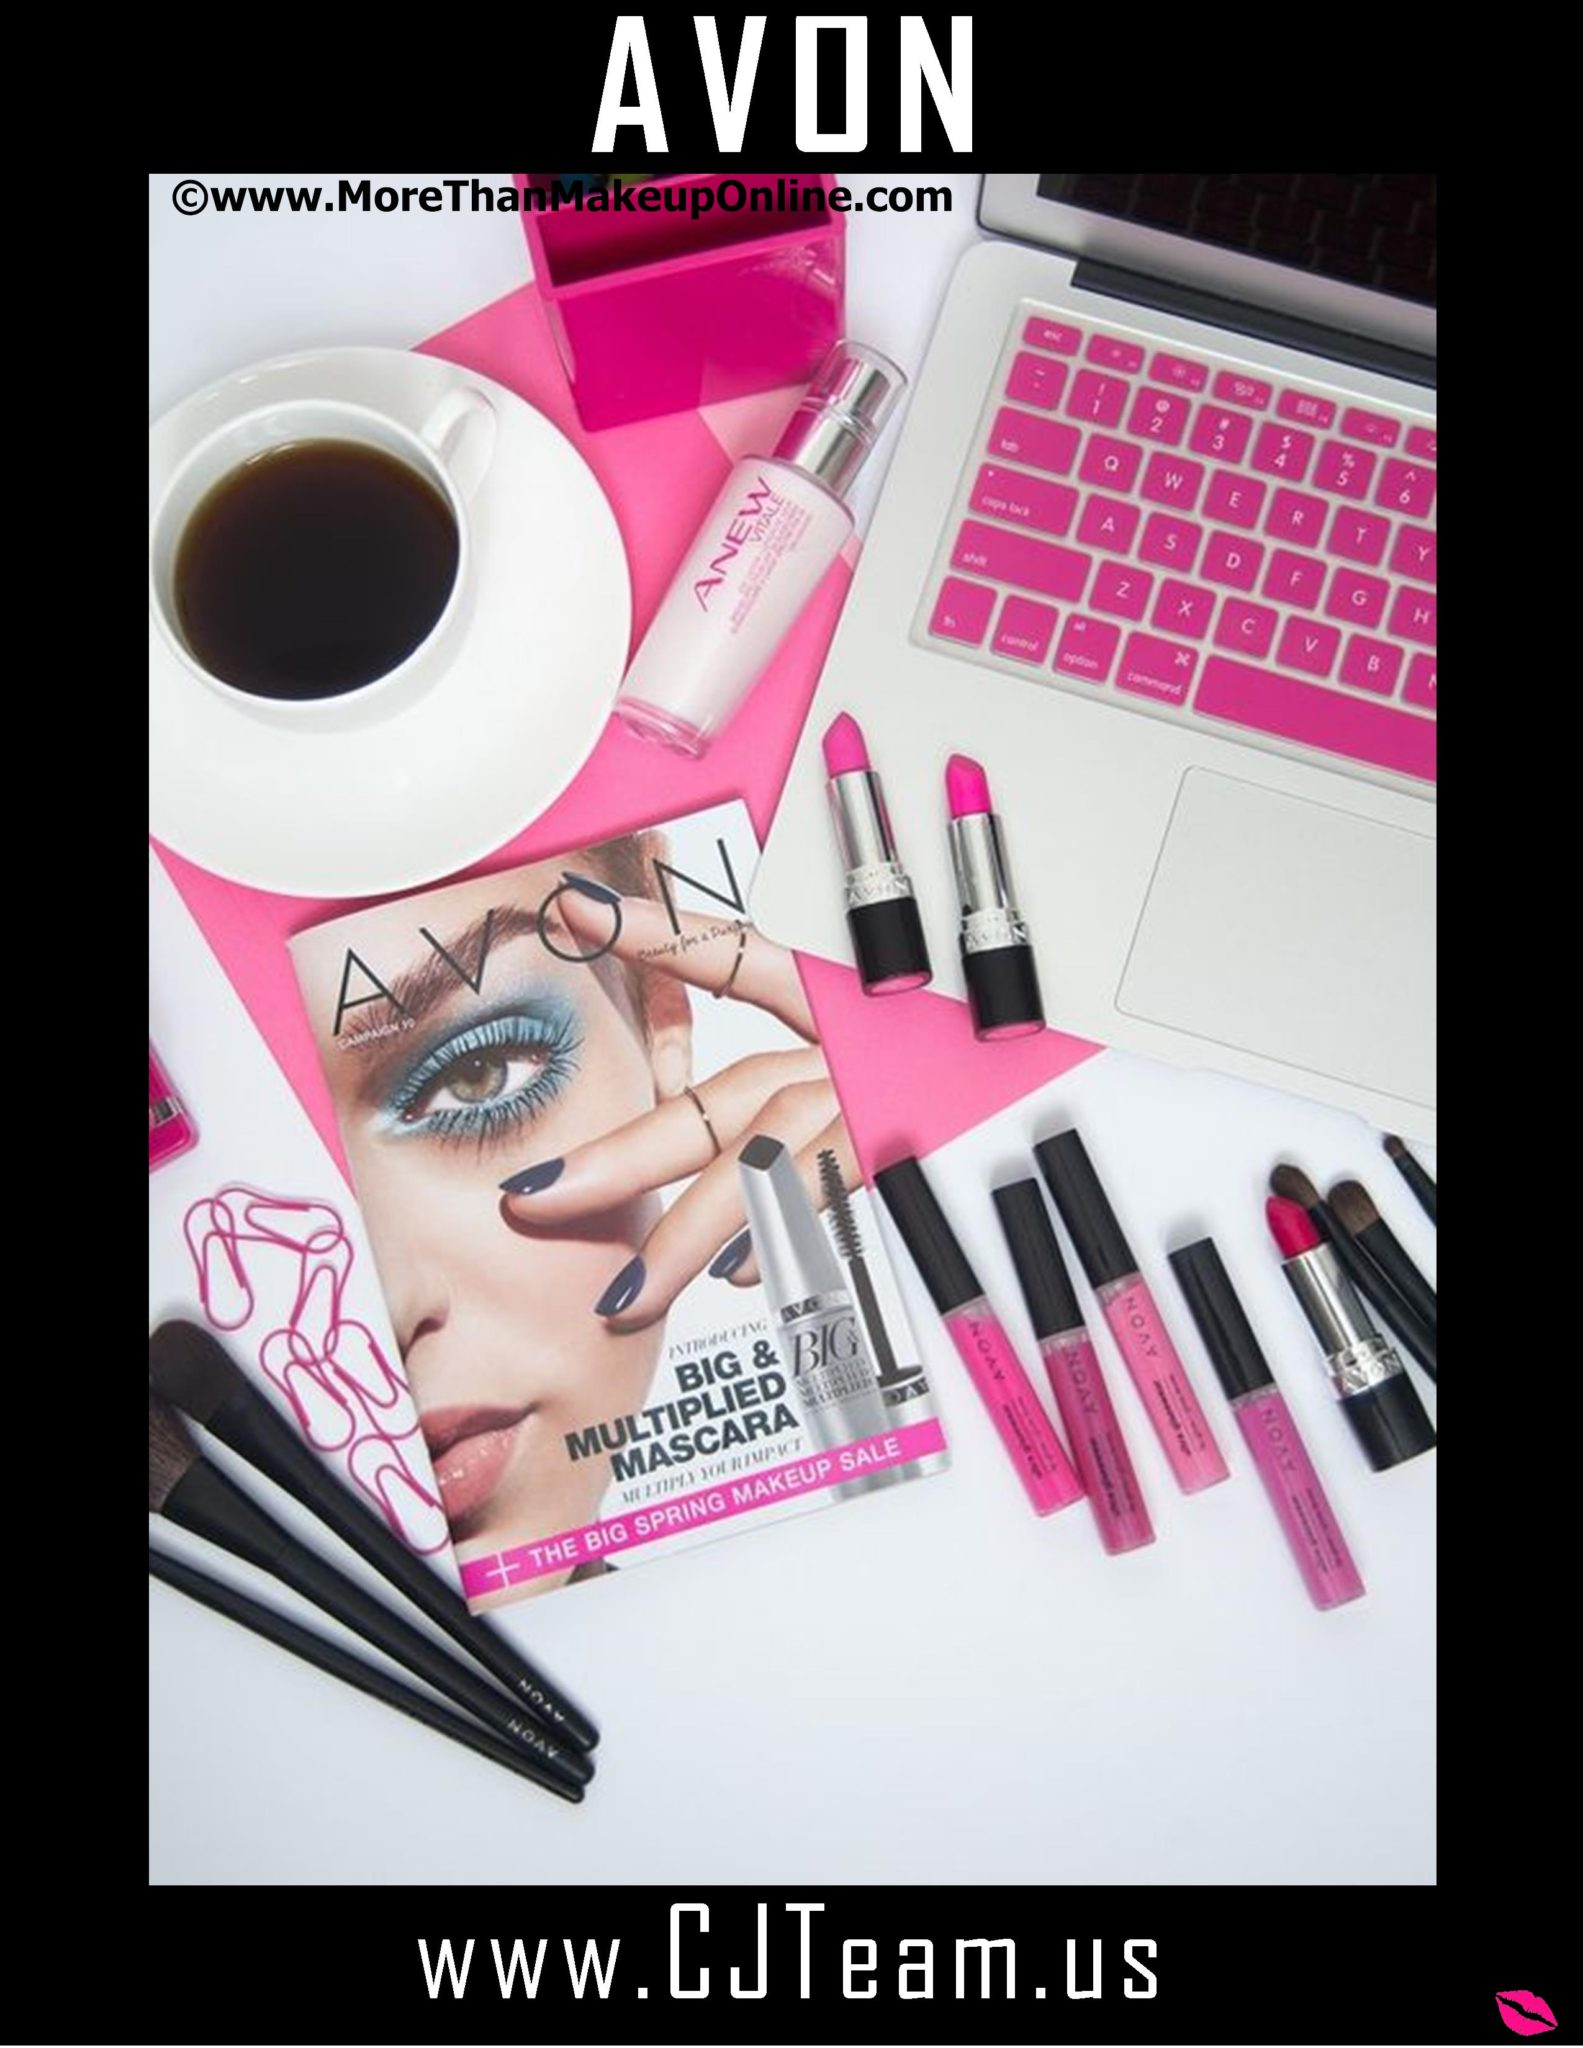 Become an Avon Rep x - More Than Makeup Online